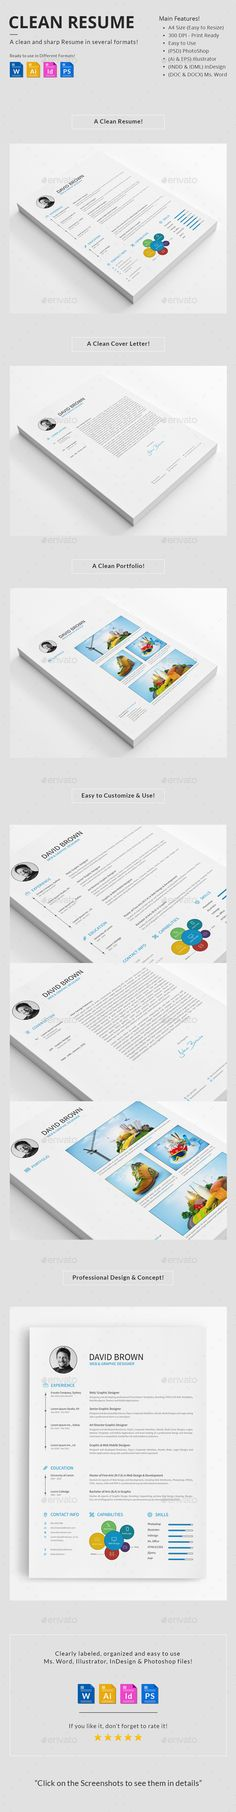 Resume Word Resume words, Resume cv and Cv resume template - resume on word